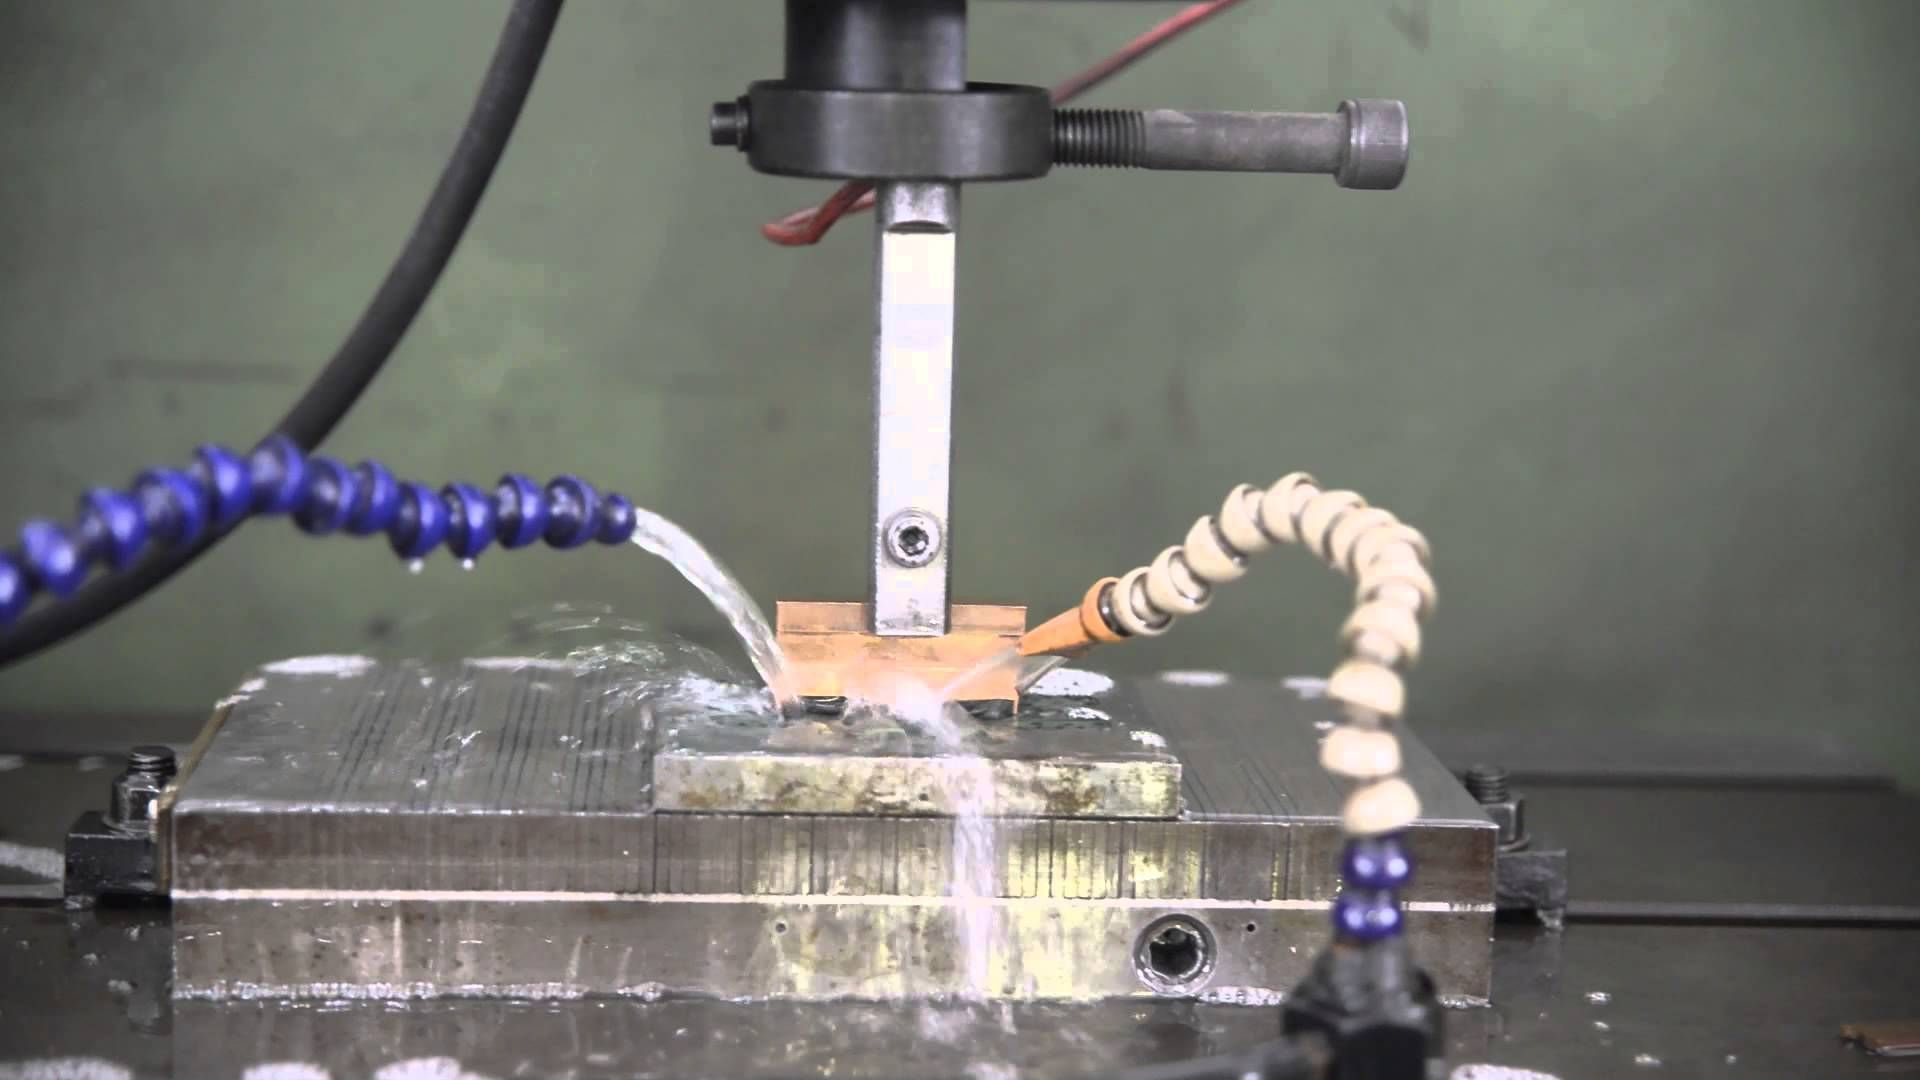 EDM Machine Operation electrical discharge | Plastic Injection